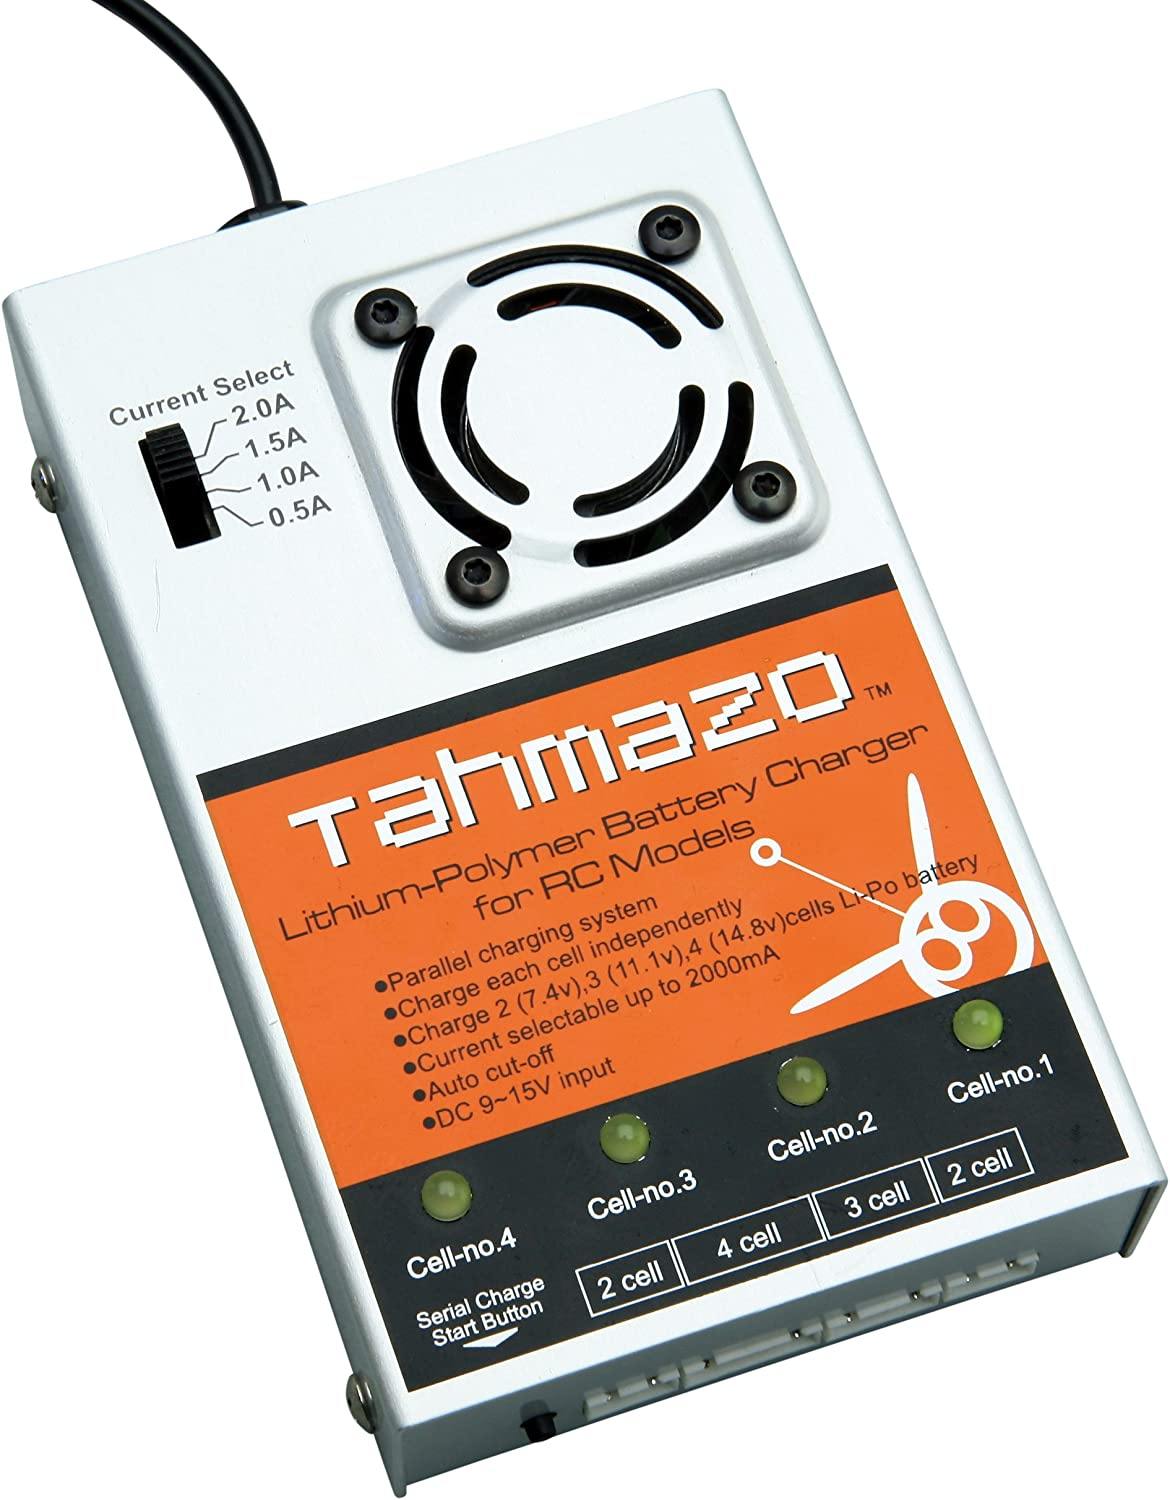 Tahmazo lipoic special charger 48 451 (Japan import   The package and the manual are written in Japanese)